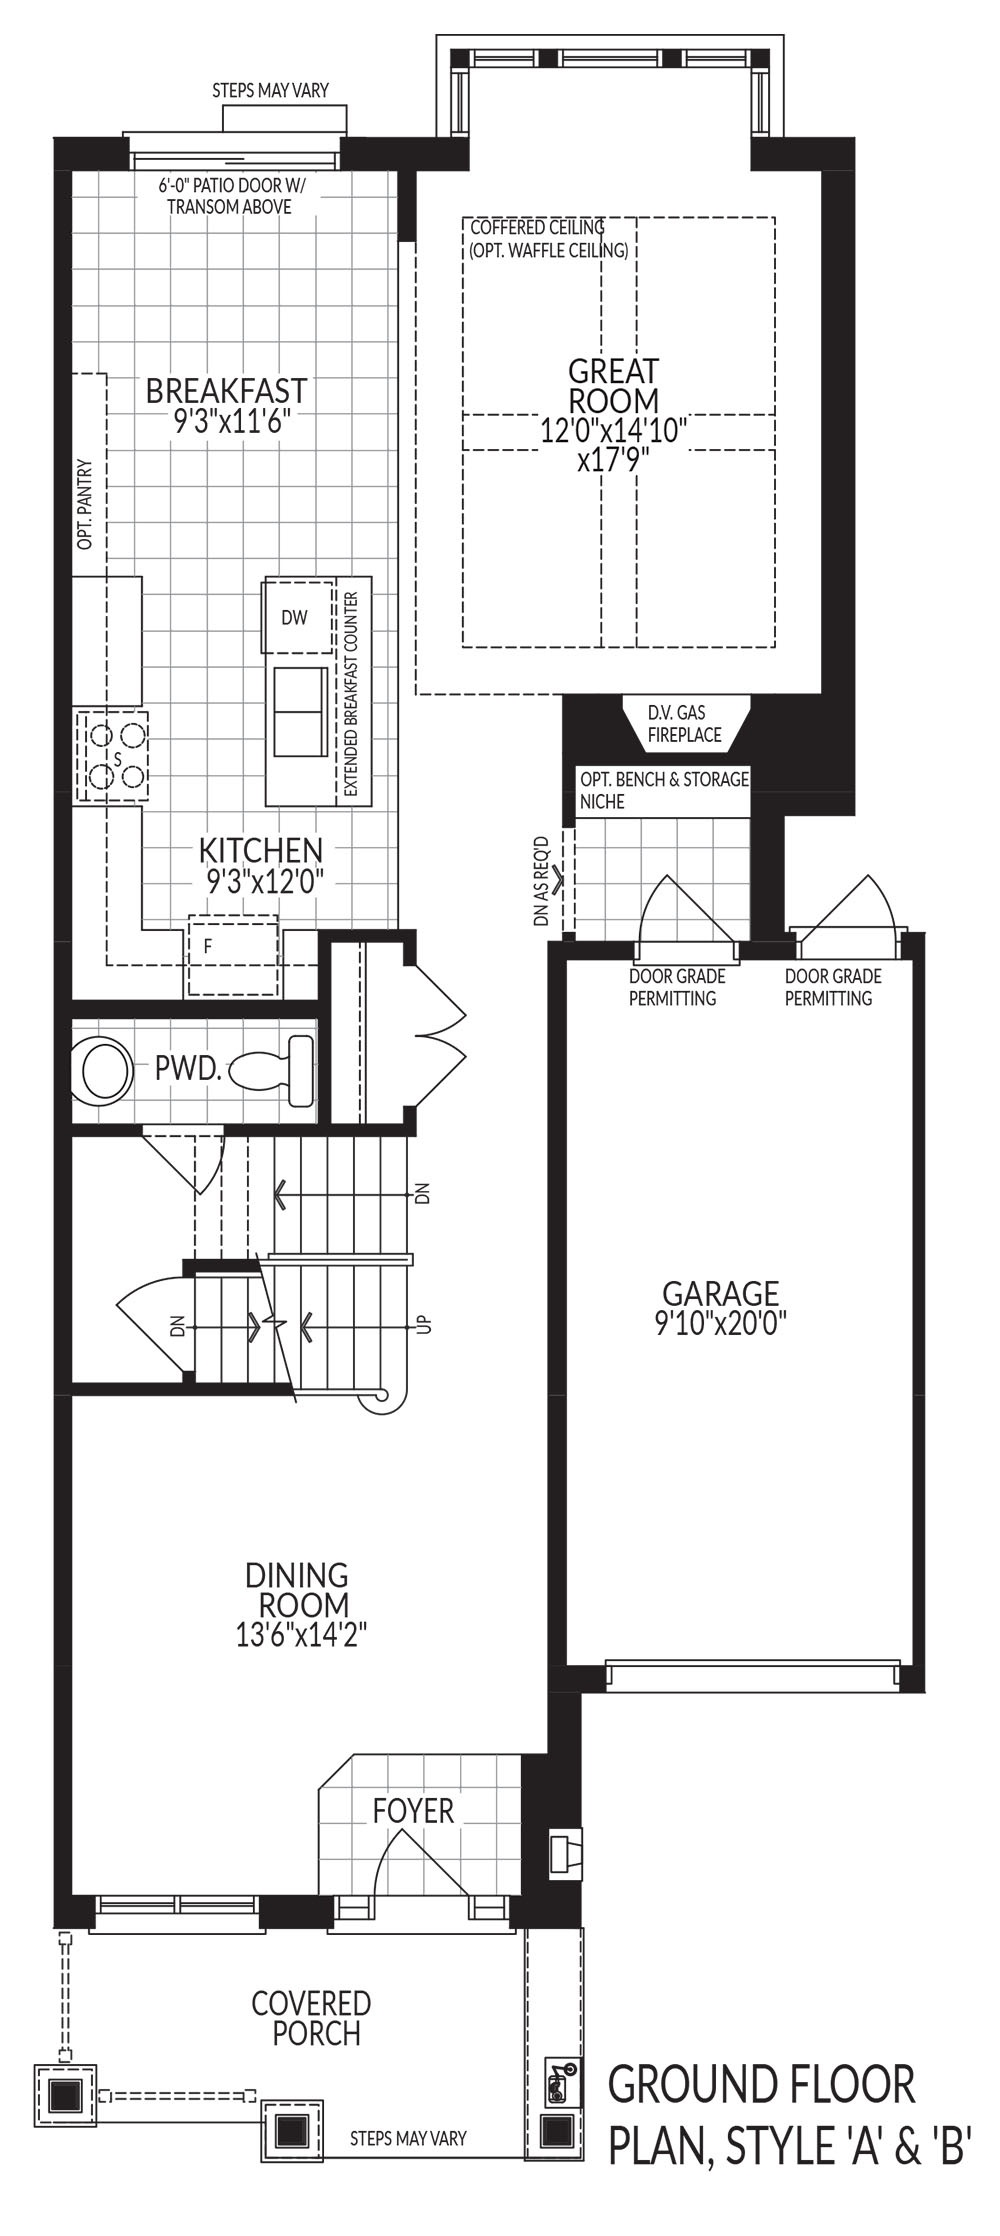 Ground floor plan style A & B